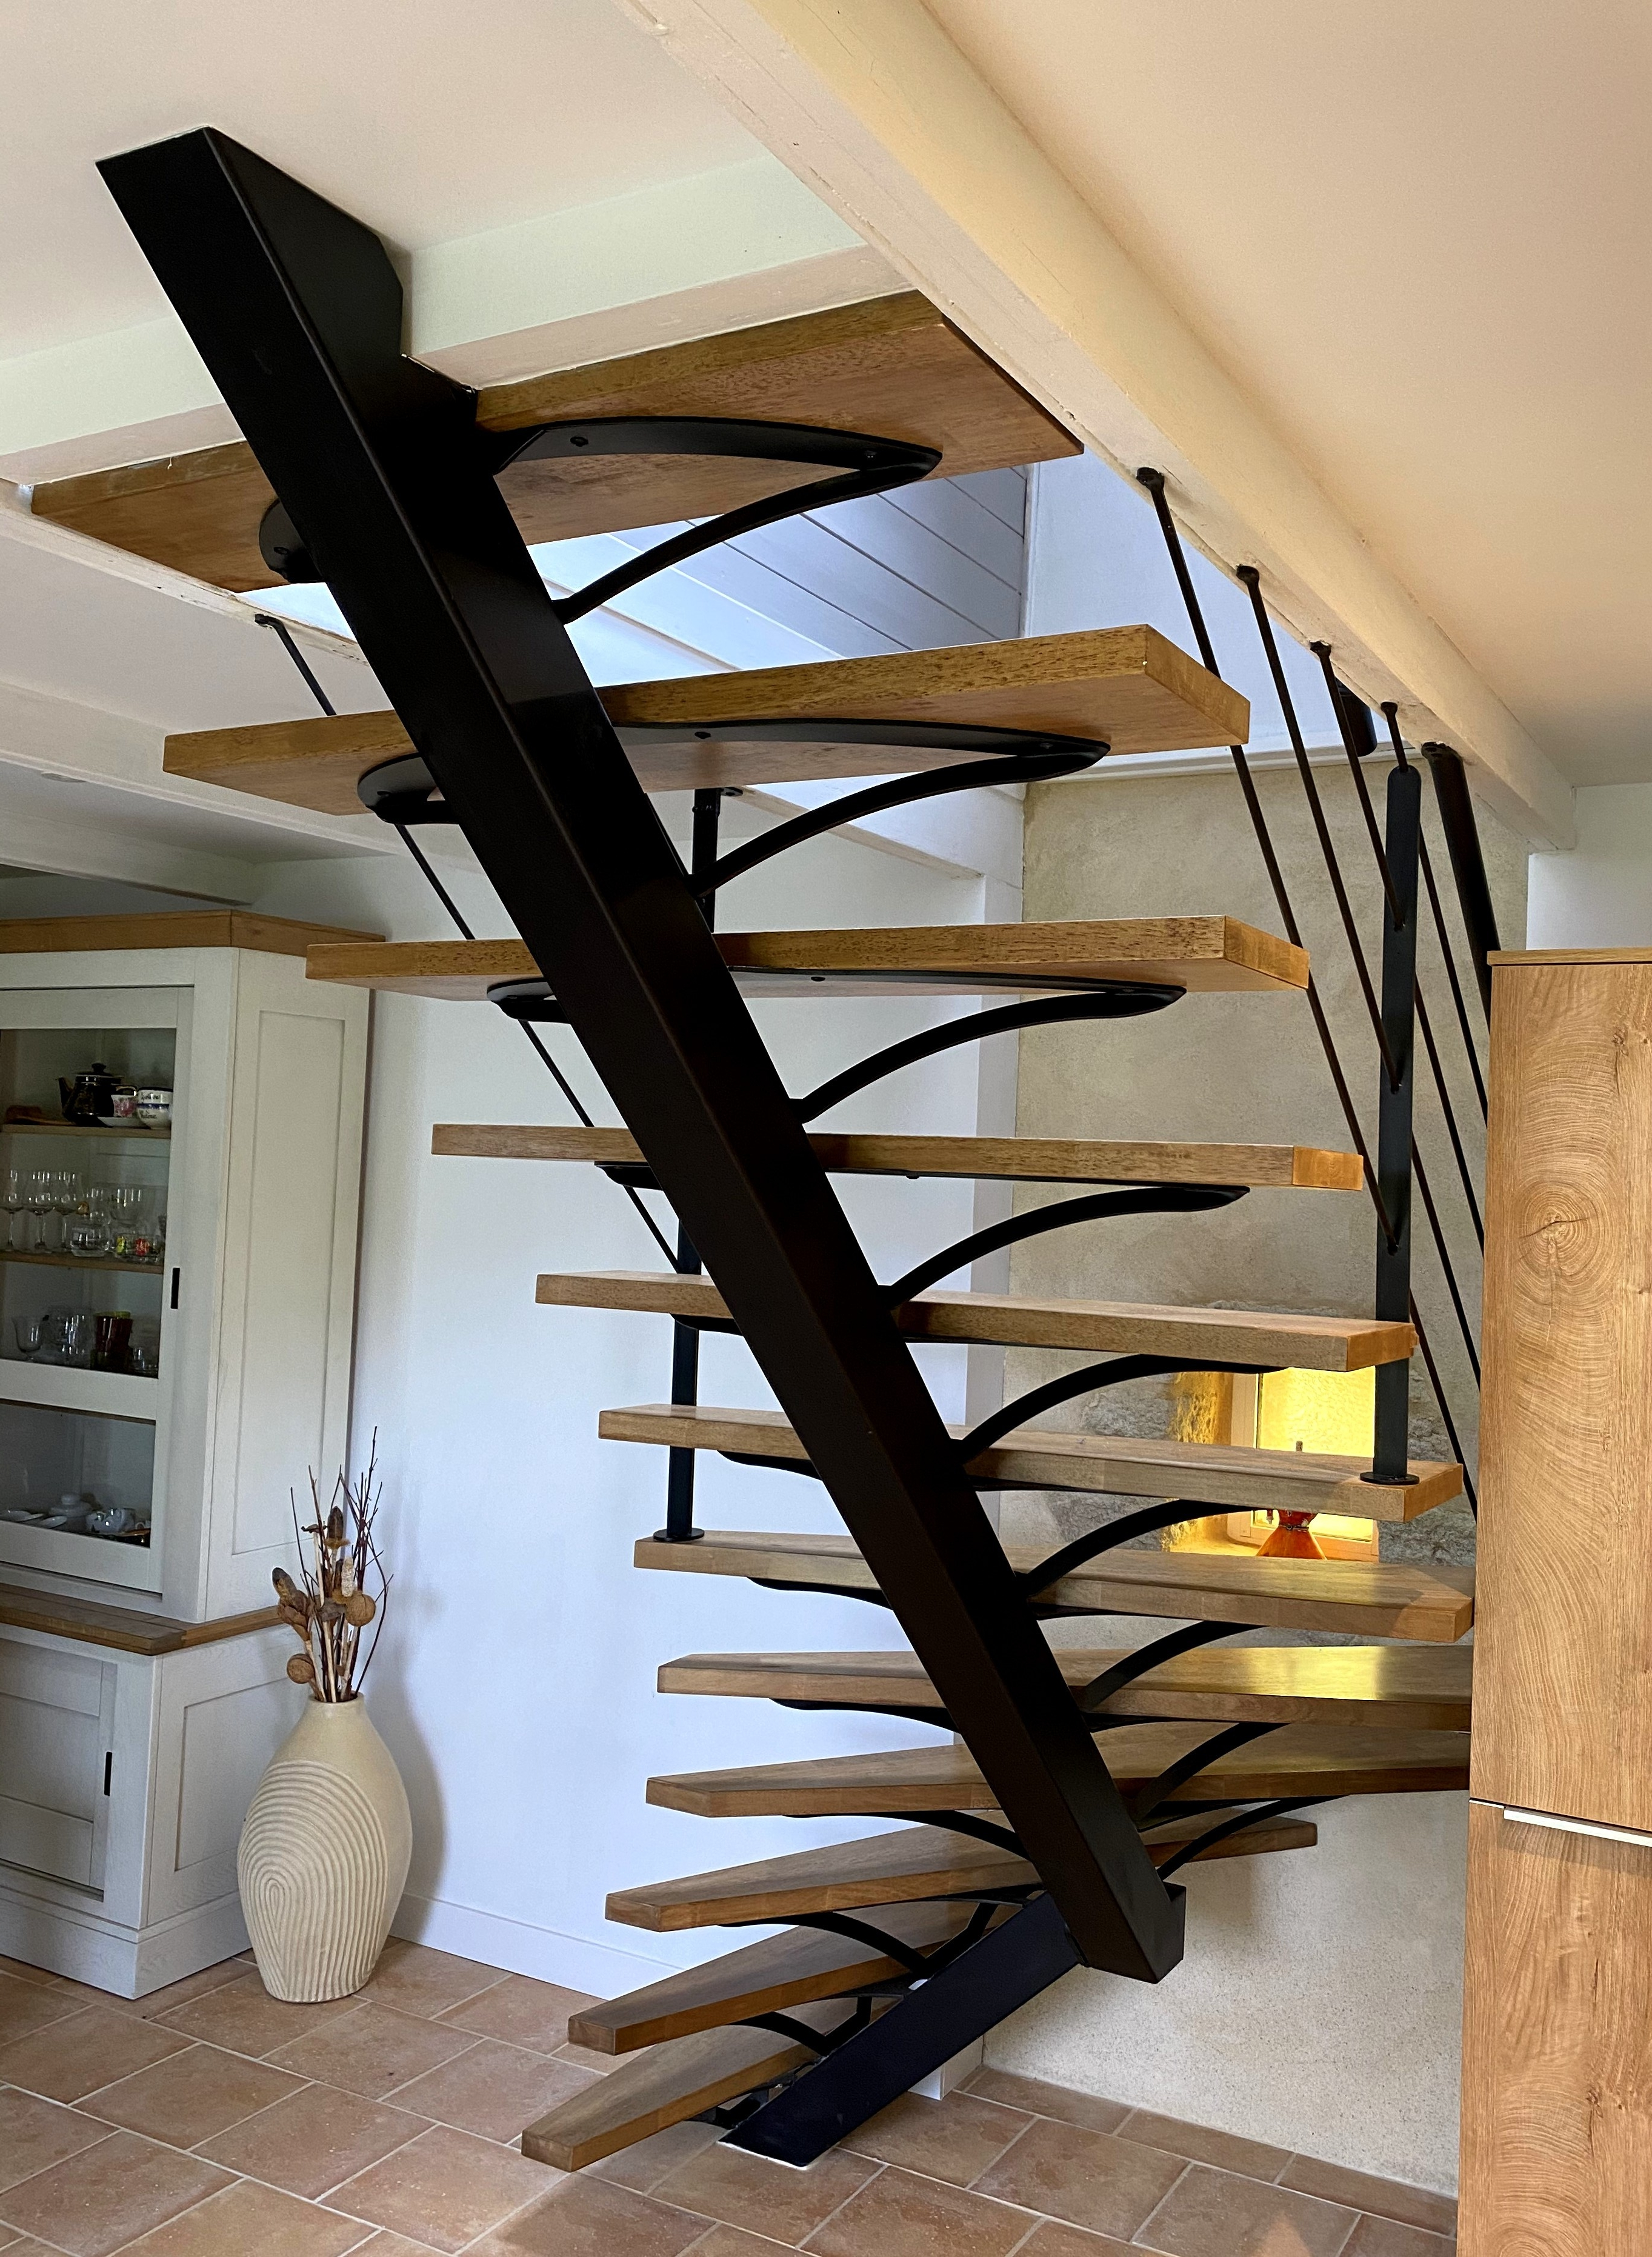 Escalier decoration interieure contemporaine art metal concept quimper fouesnant 3